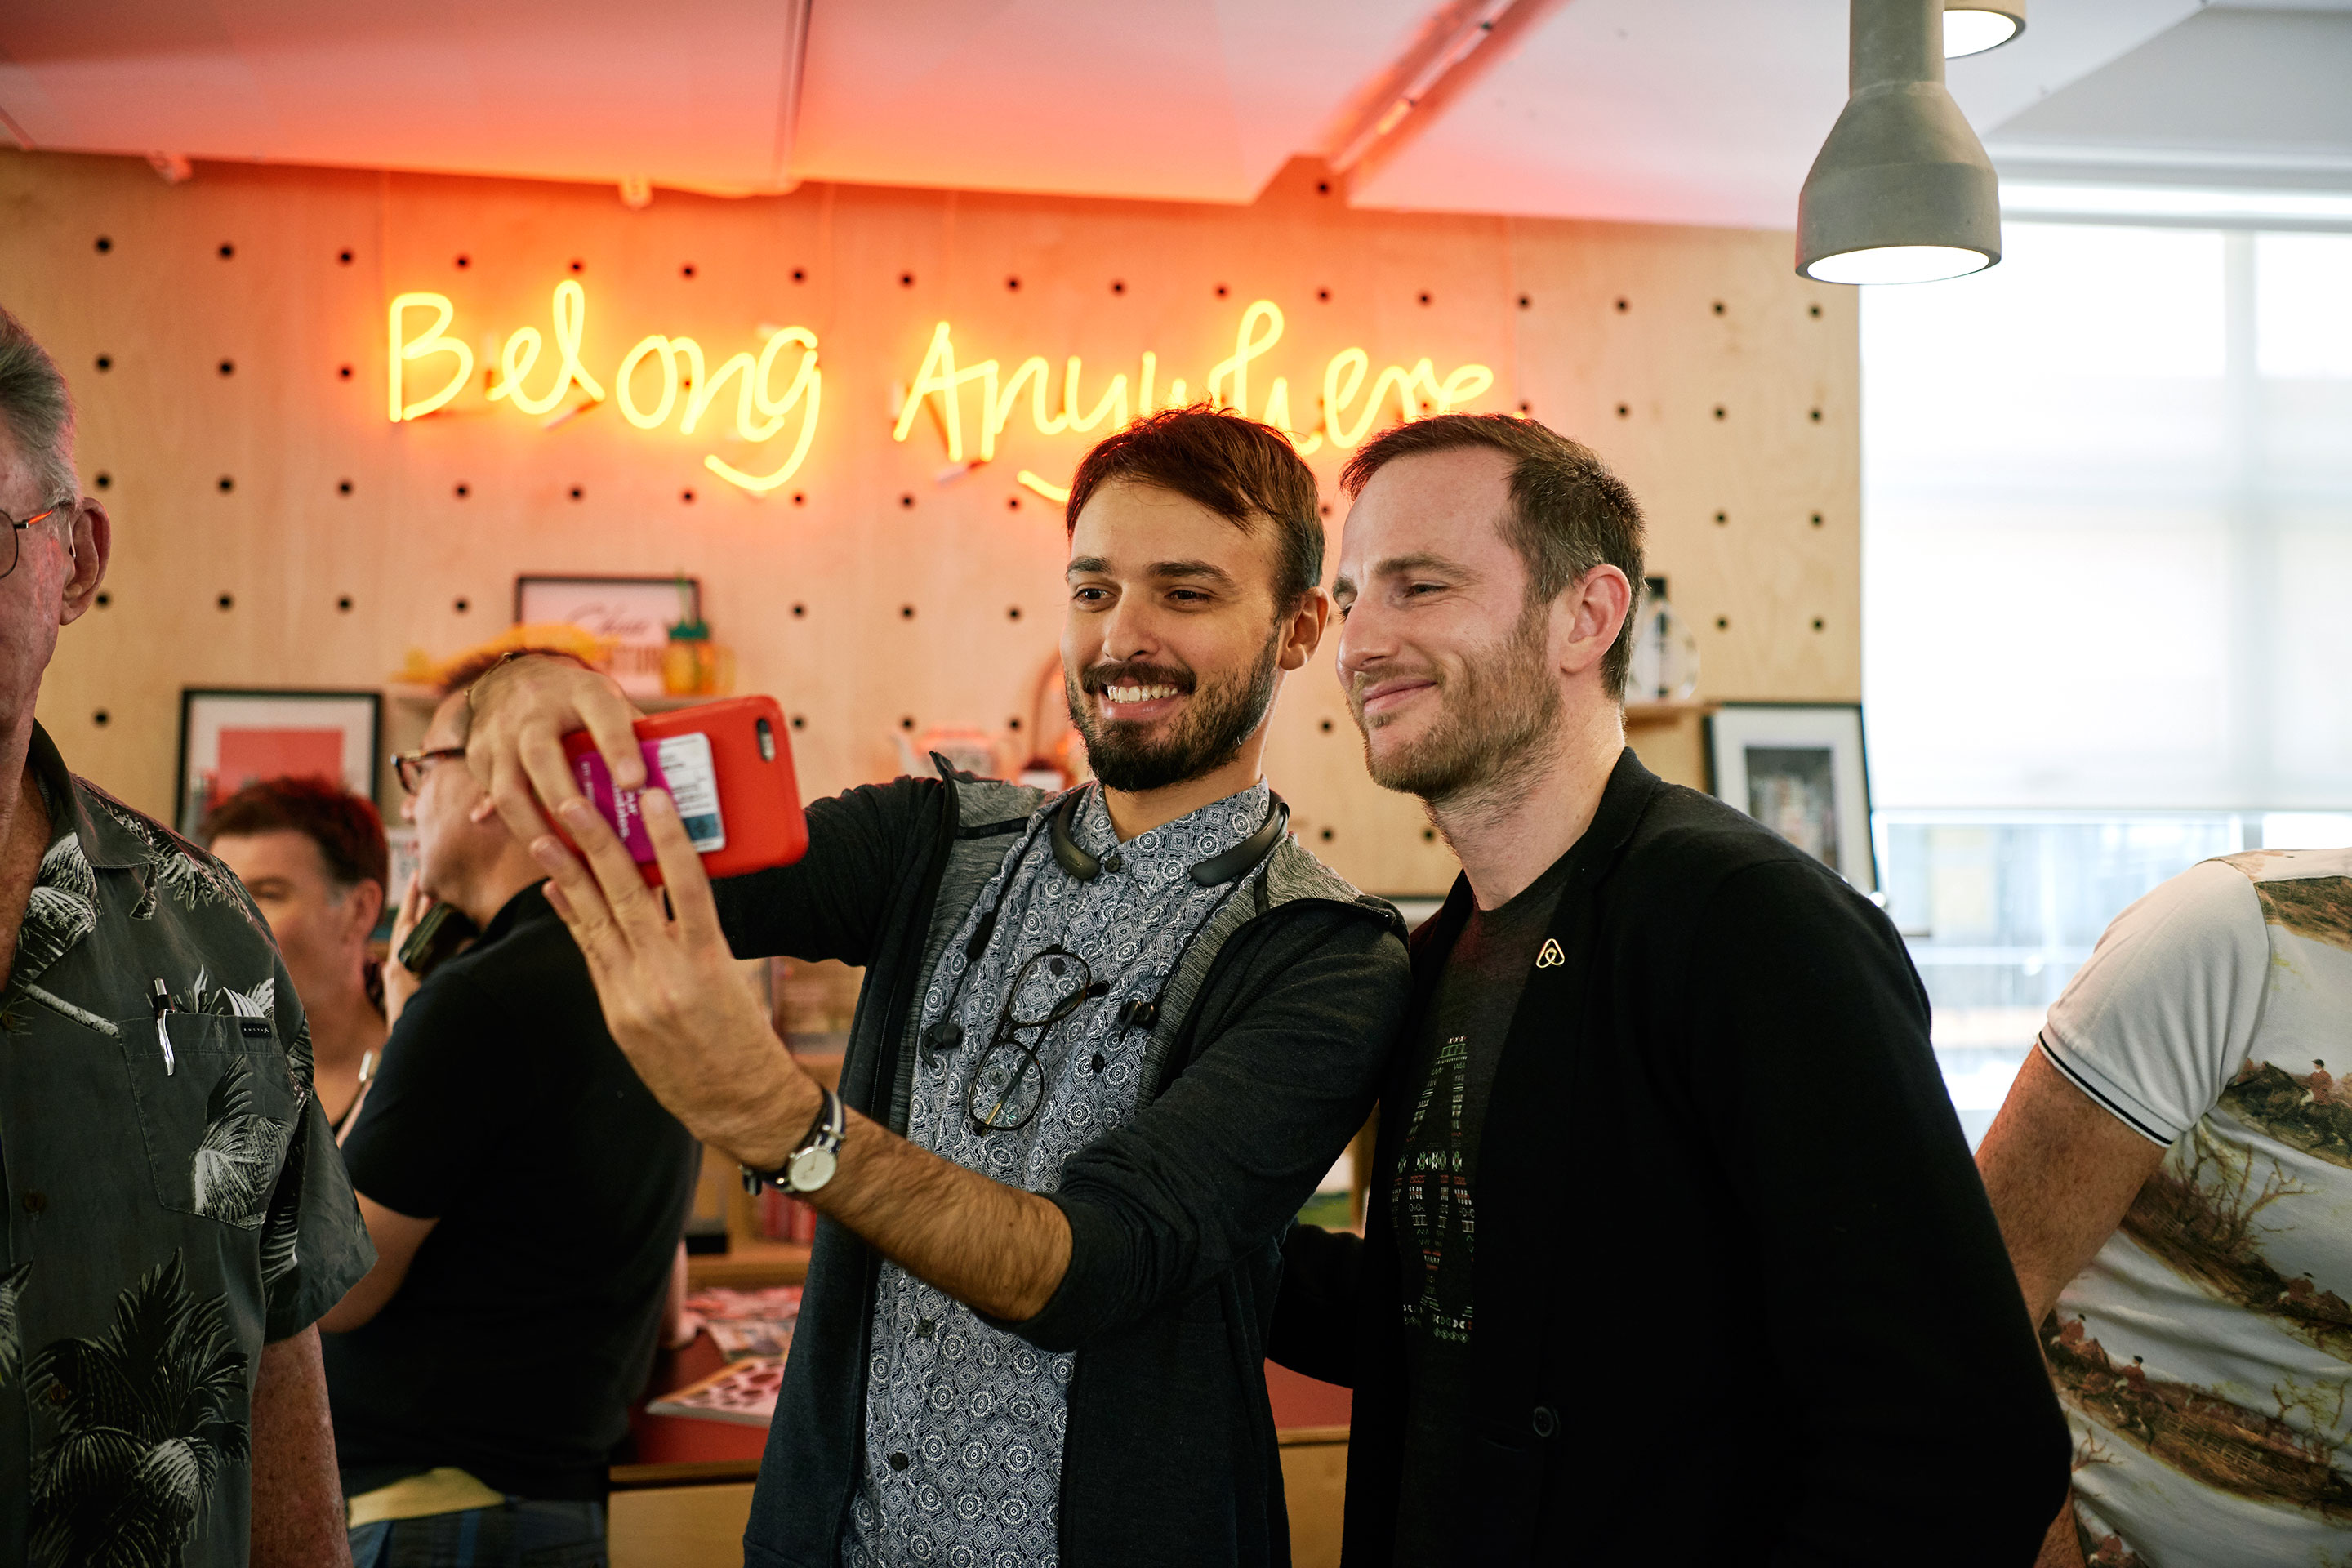 Airbnb cofounder Joe Gebbia (right) poses for a selfie at a gathering of Airbnb hosts in Australia.